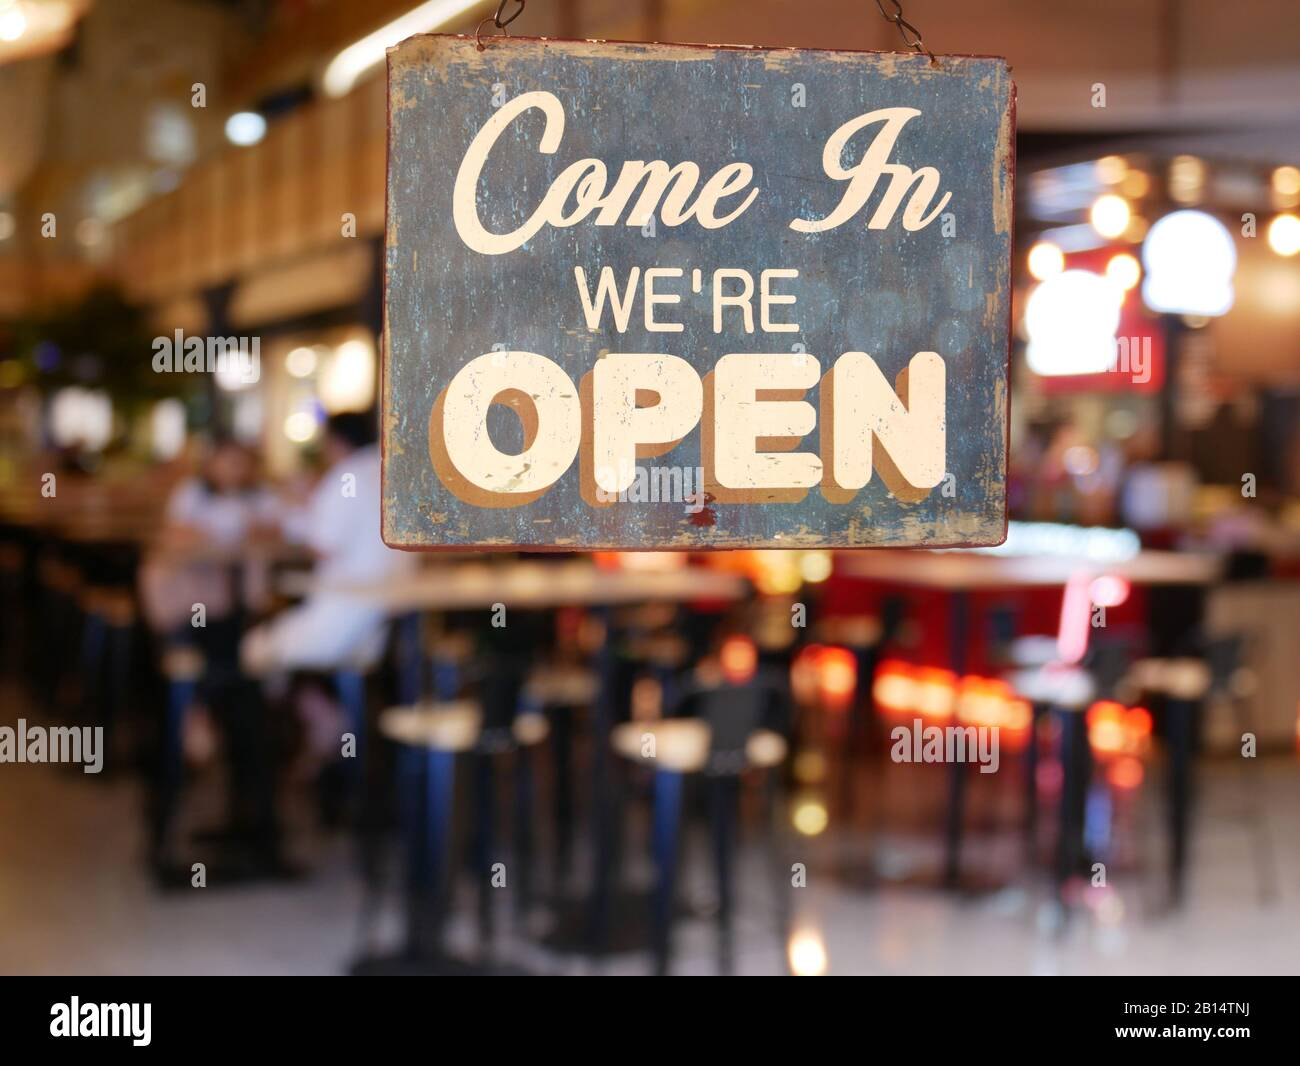 Coffee Sign Vintage Cafe High Resolution Stock Photography And Images Alamy